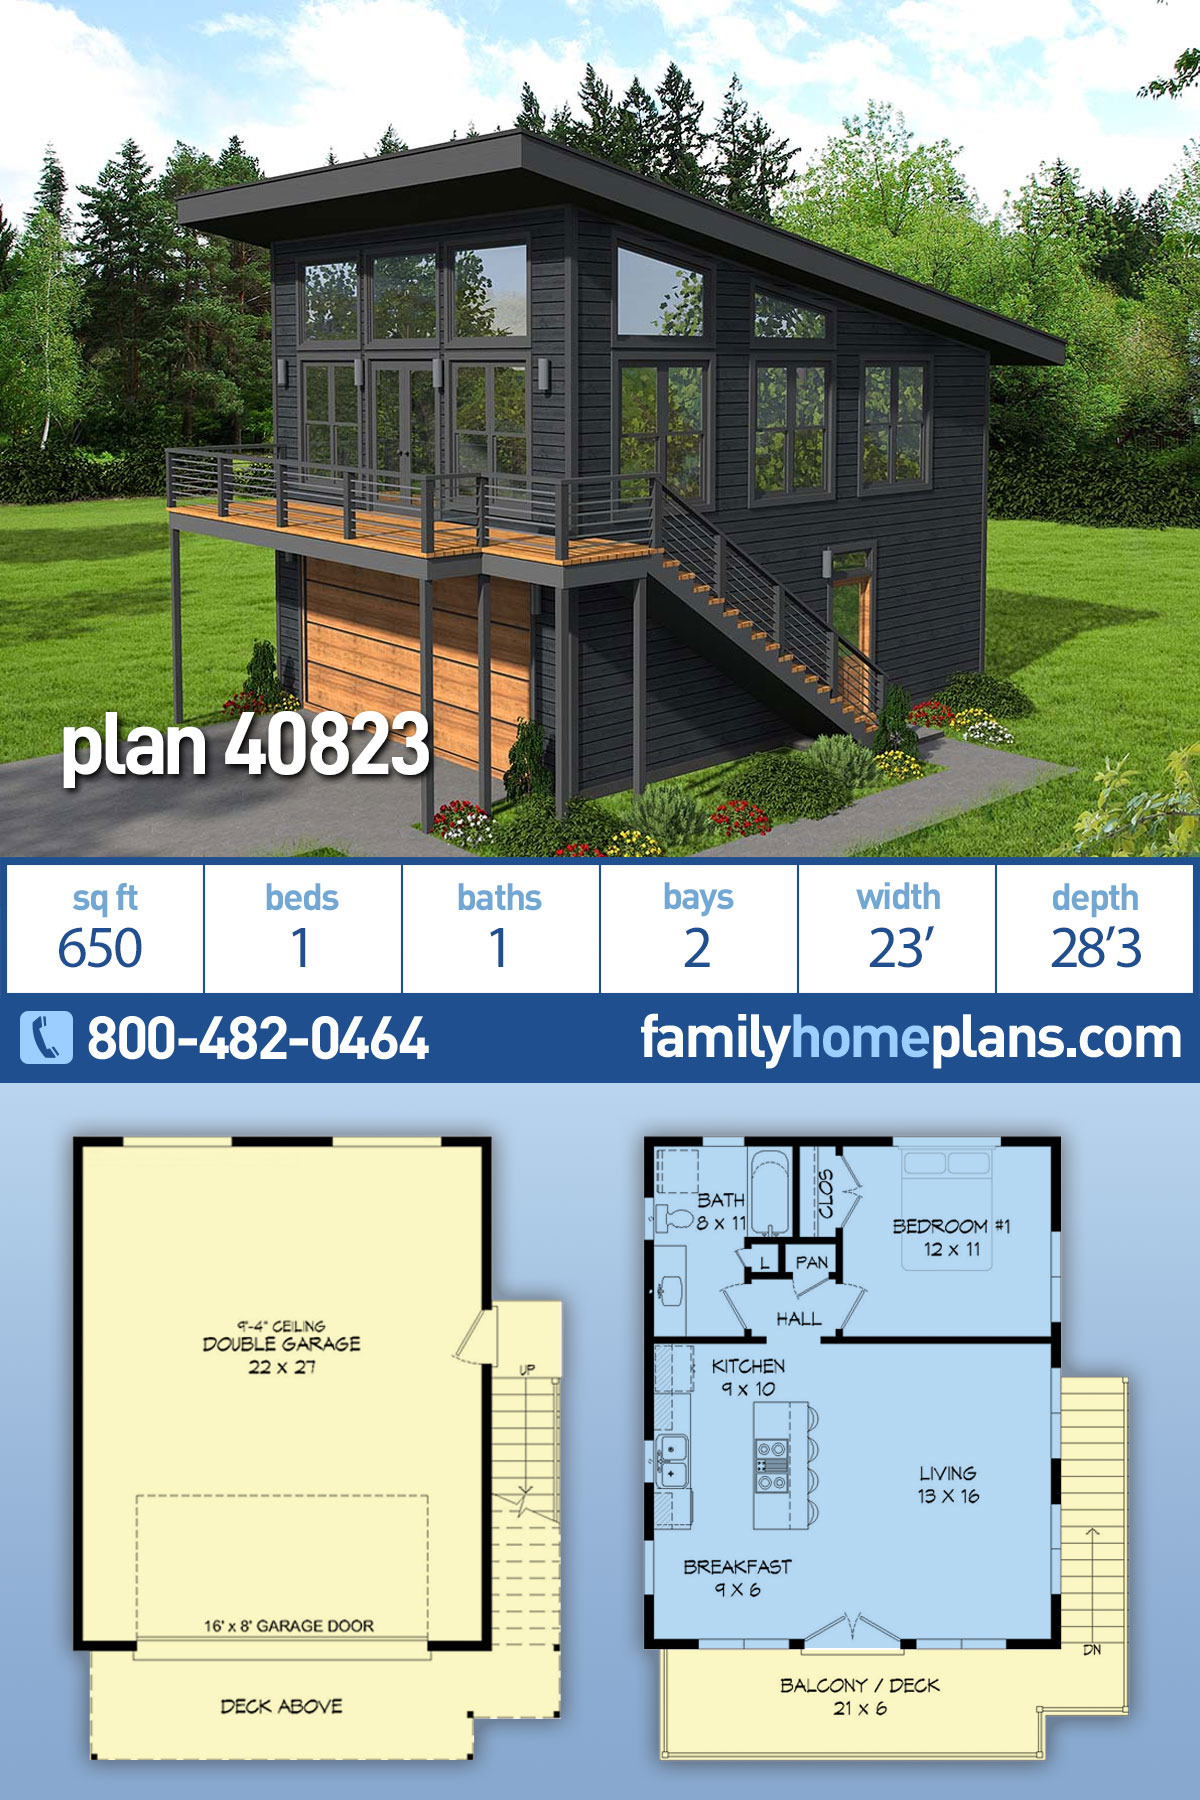 1 Bedroom House Plans with Garage Inspirational Modern Style House Plan with 1 Bed 1 Bath 2 Car Garage